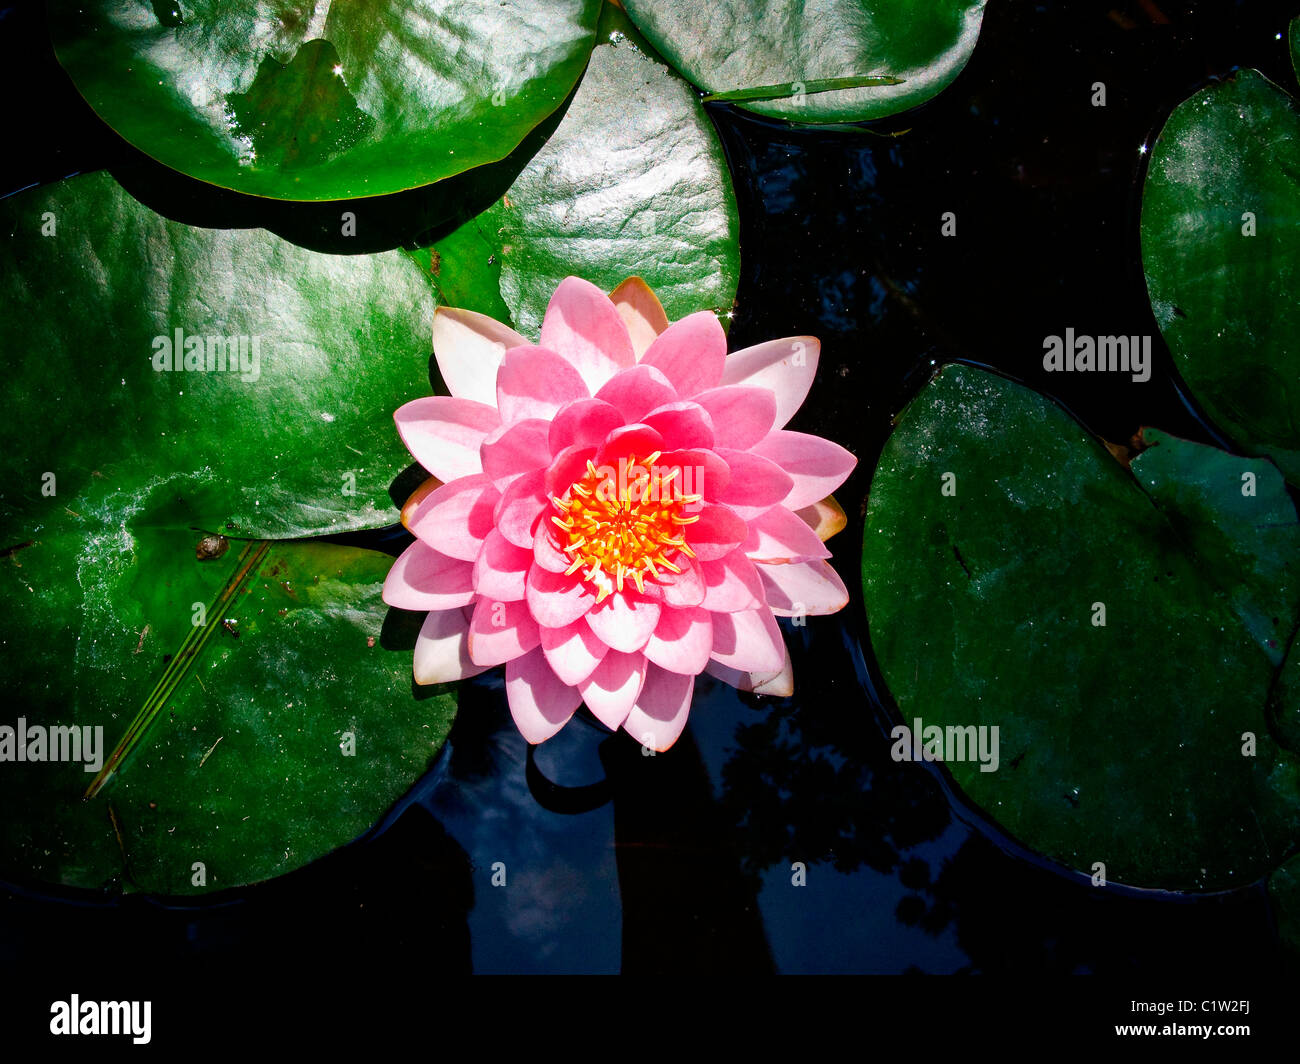 High angle view of a lotus flower stock photo 35586198 alamy high angle view of a lotus flower izmirmasajfo